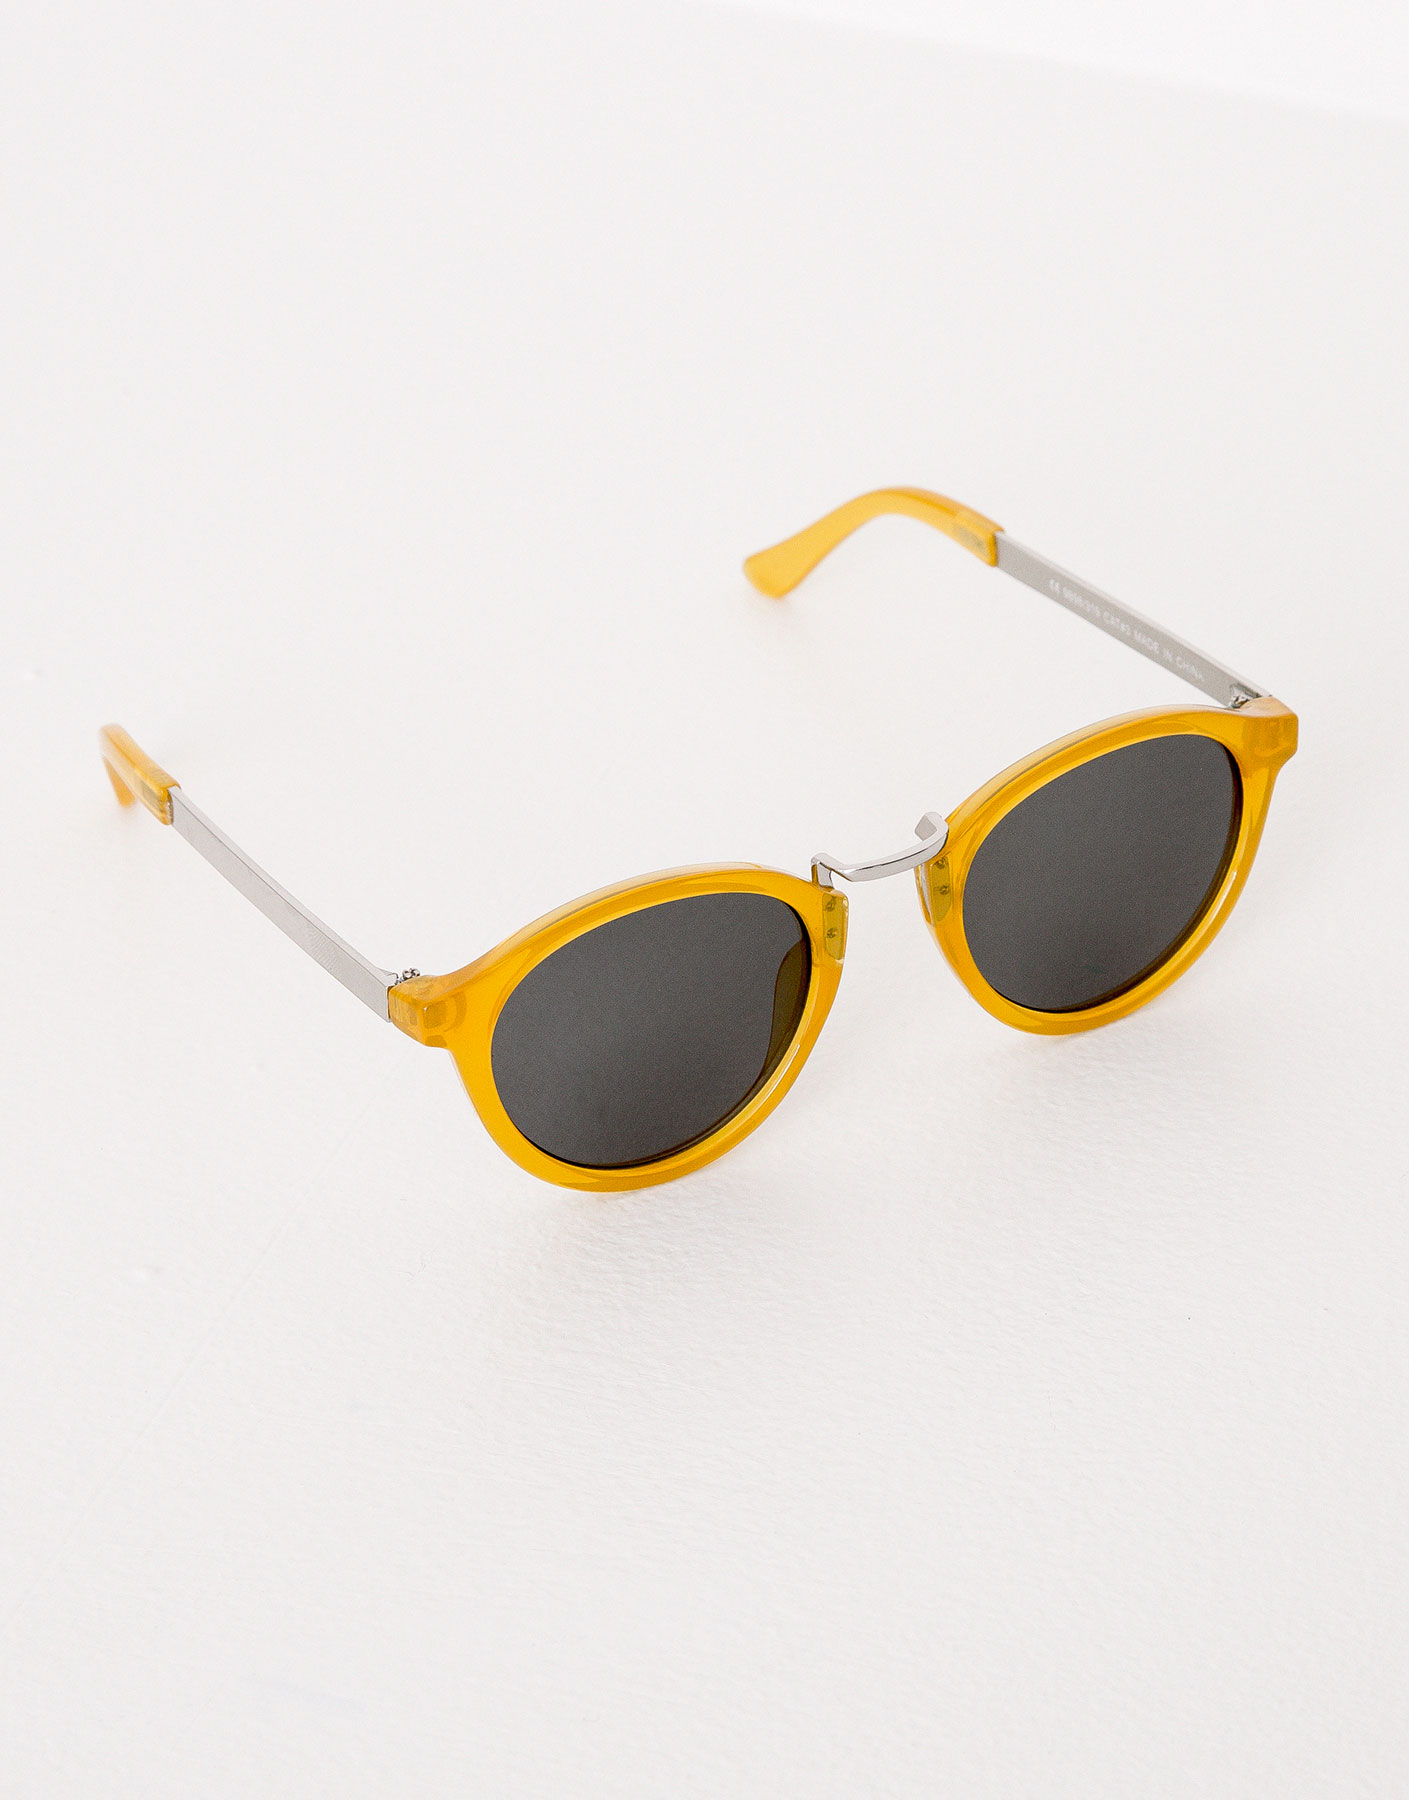 Yellow frame sunglasses